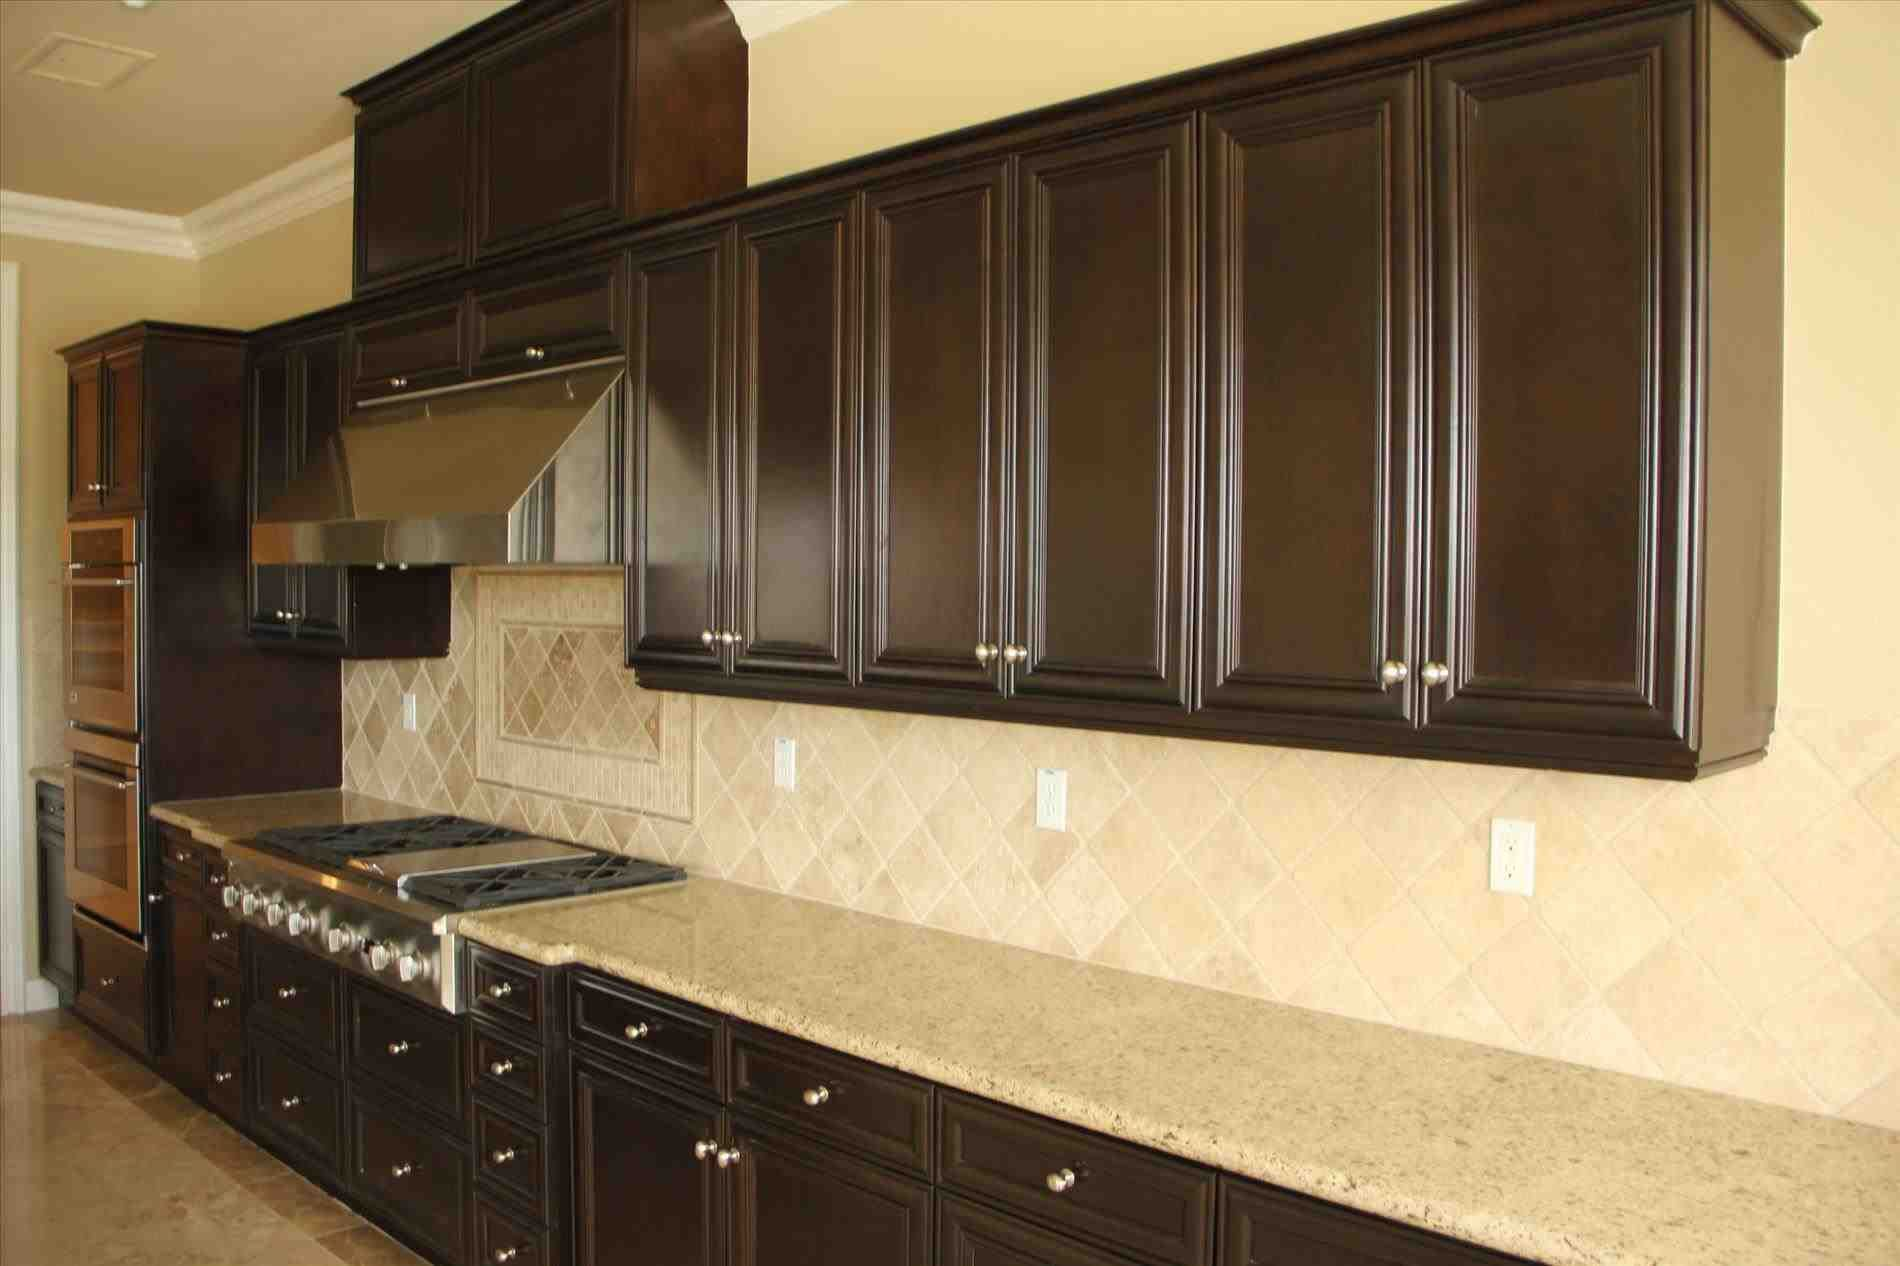 Kitchen cabinets door knobs you might want to think about teaming up having a specialist kitchen cabinet designer if you a